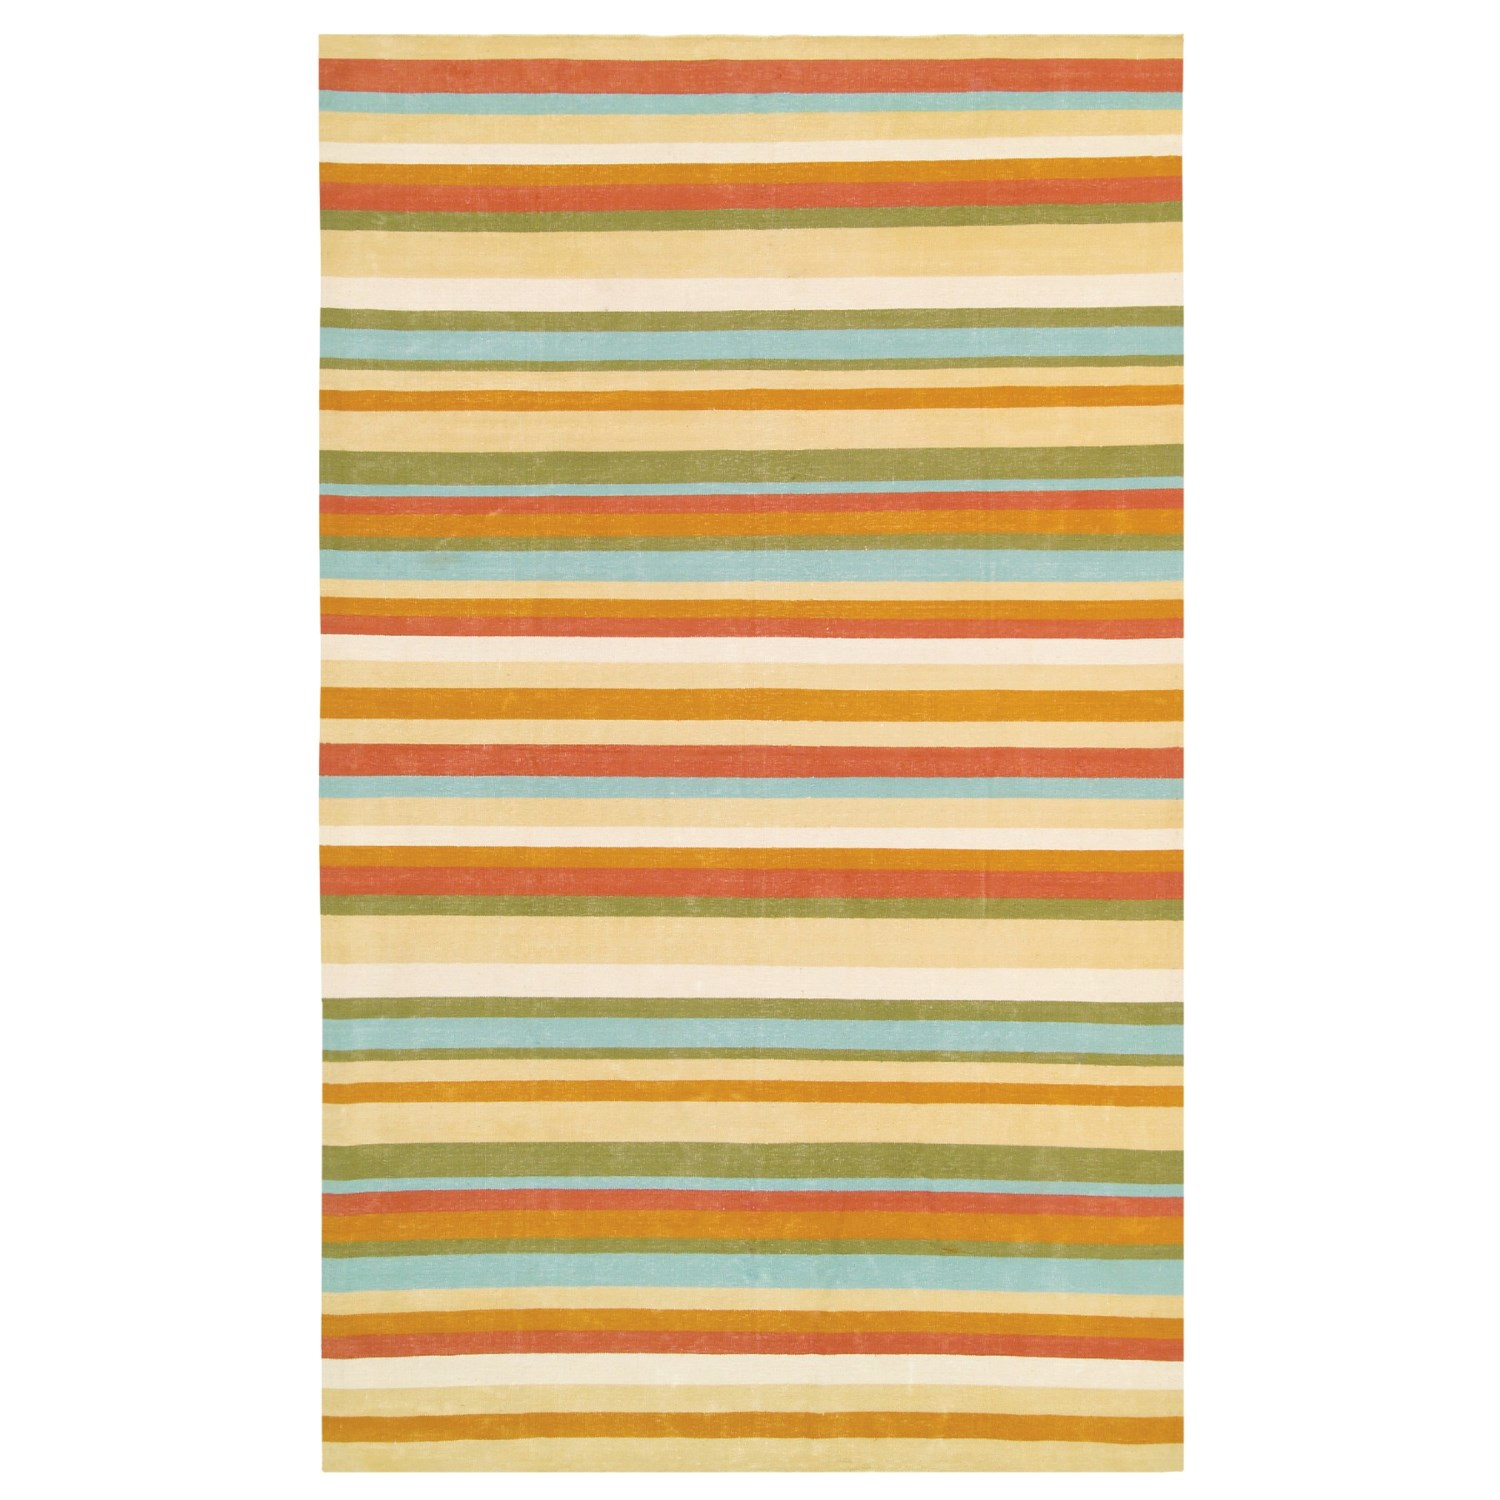 Company C Deluxe Woven Area Rug 5x8 39 94797 Save 79